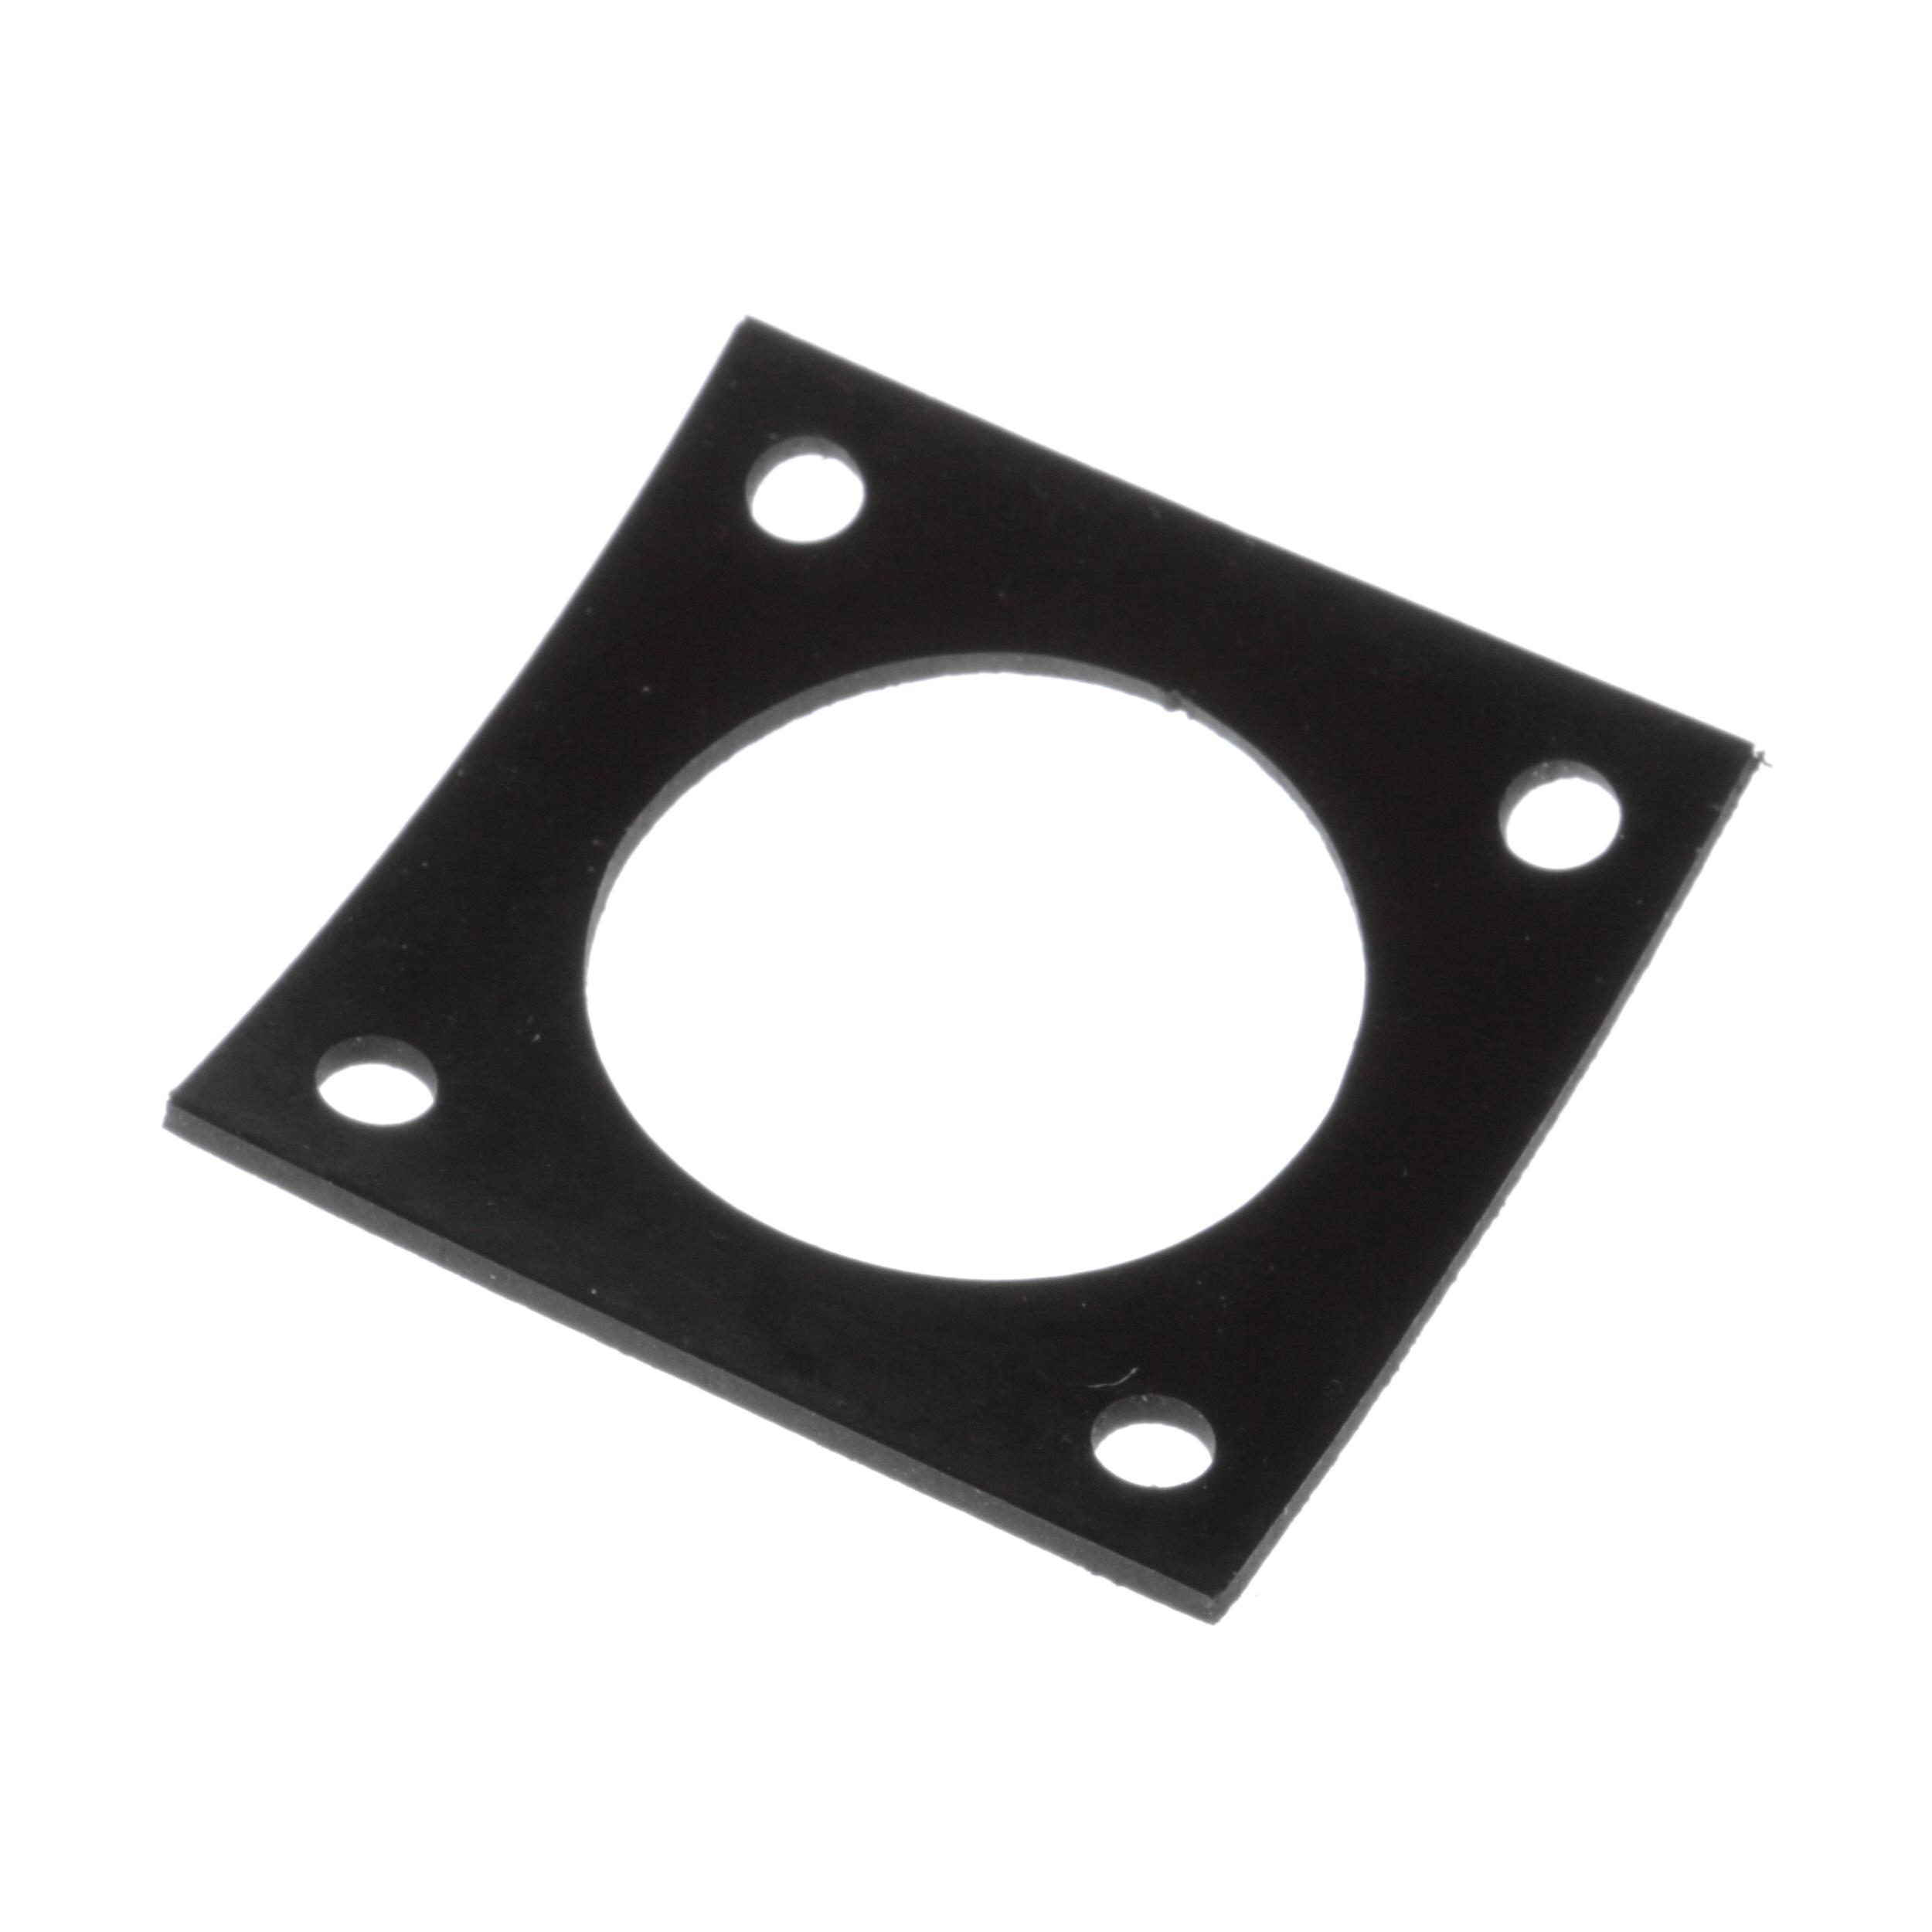 CHAMPION GASKET 3X3X1/8 IN 2 IN HOL